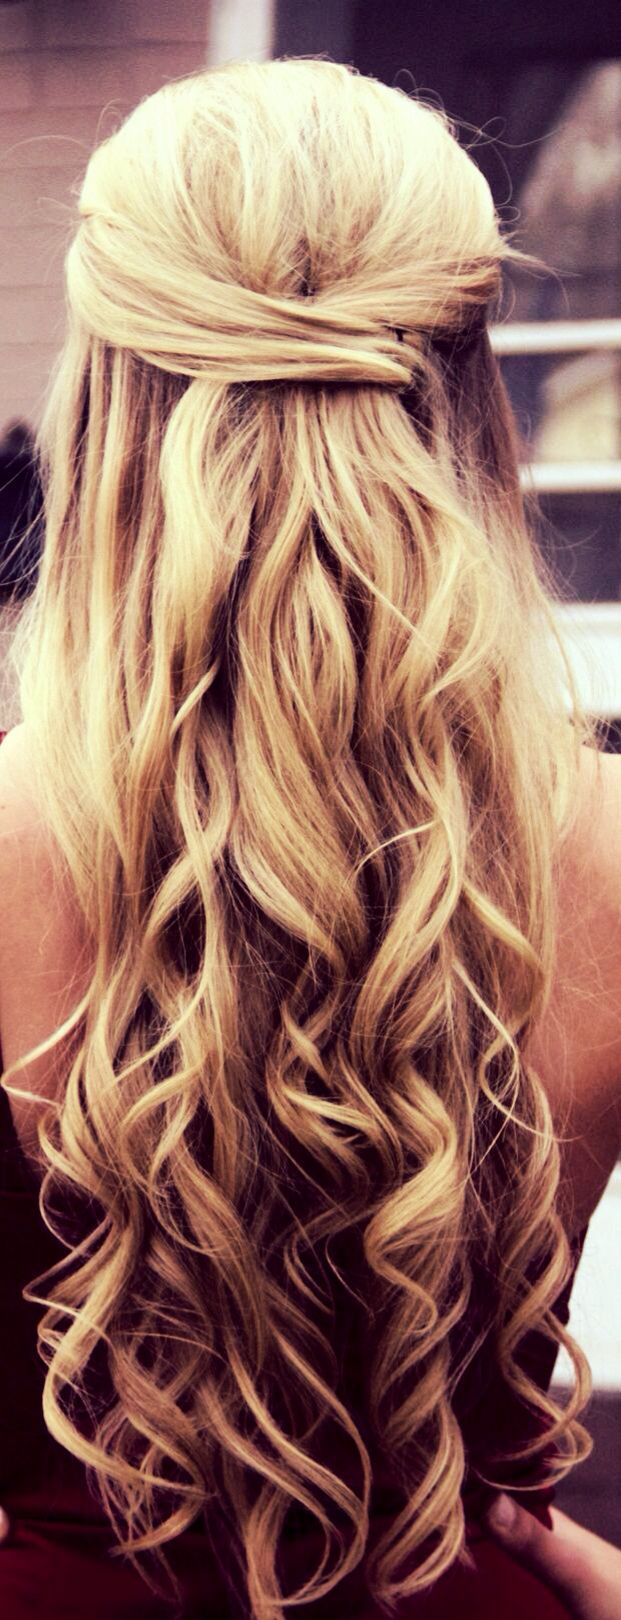 Prom Hairstyle waterfall braid for prom hairstyles Best 25 Long Prom Hair Ideas On Pinterest Long Bridal Hair Hair Styles For Prom And Long Hair Wedding